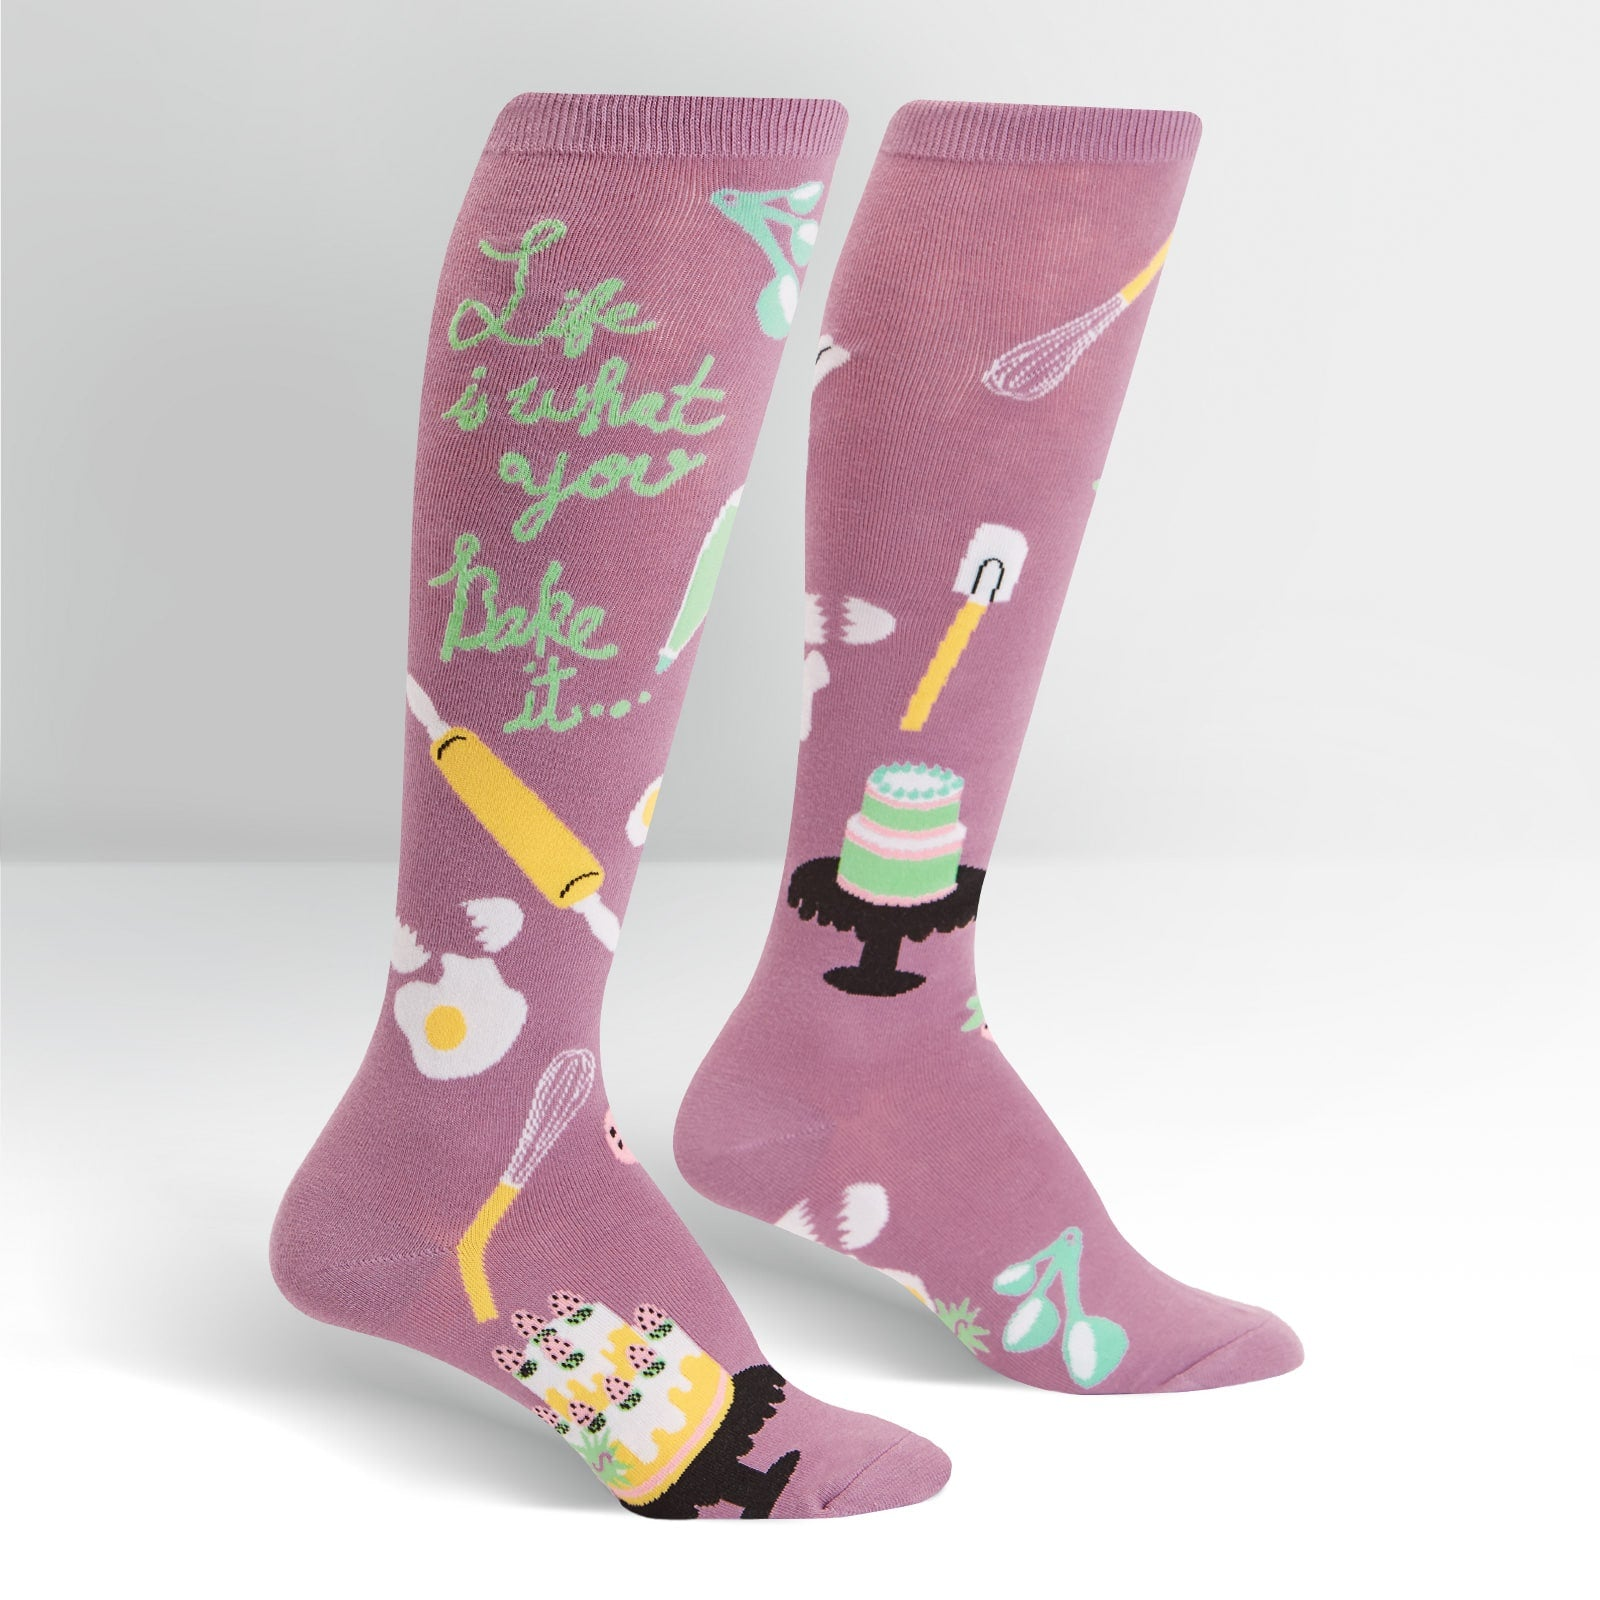 Women's Baking Magic Knee High